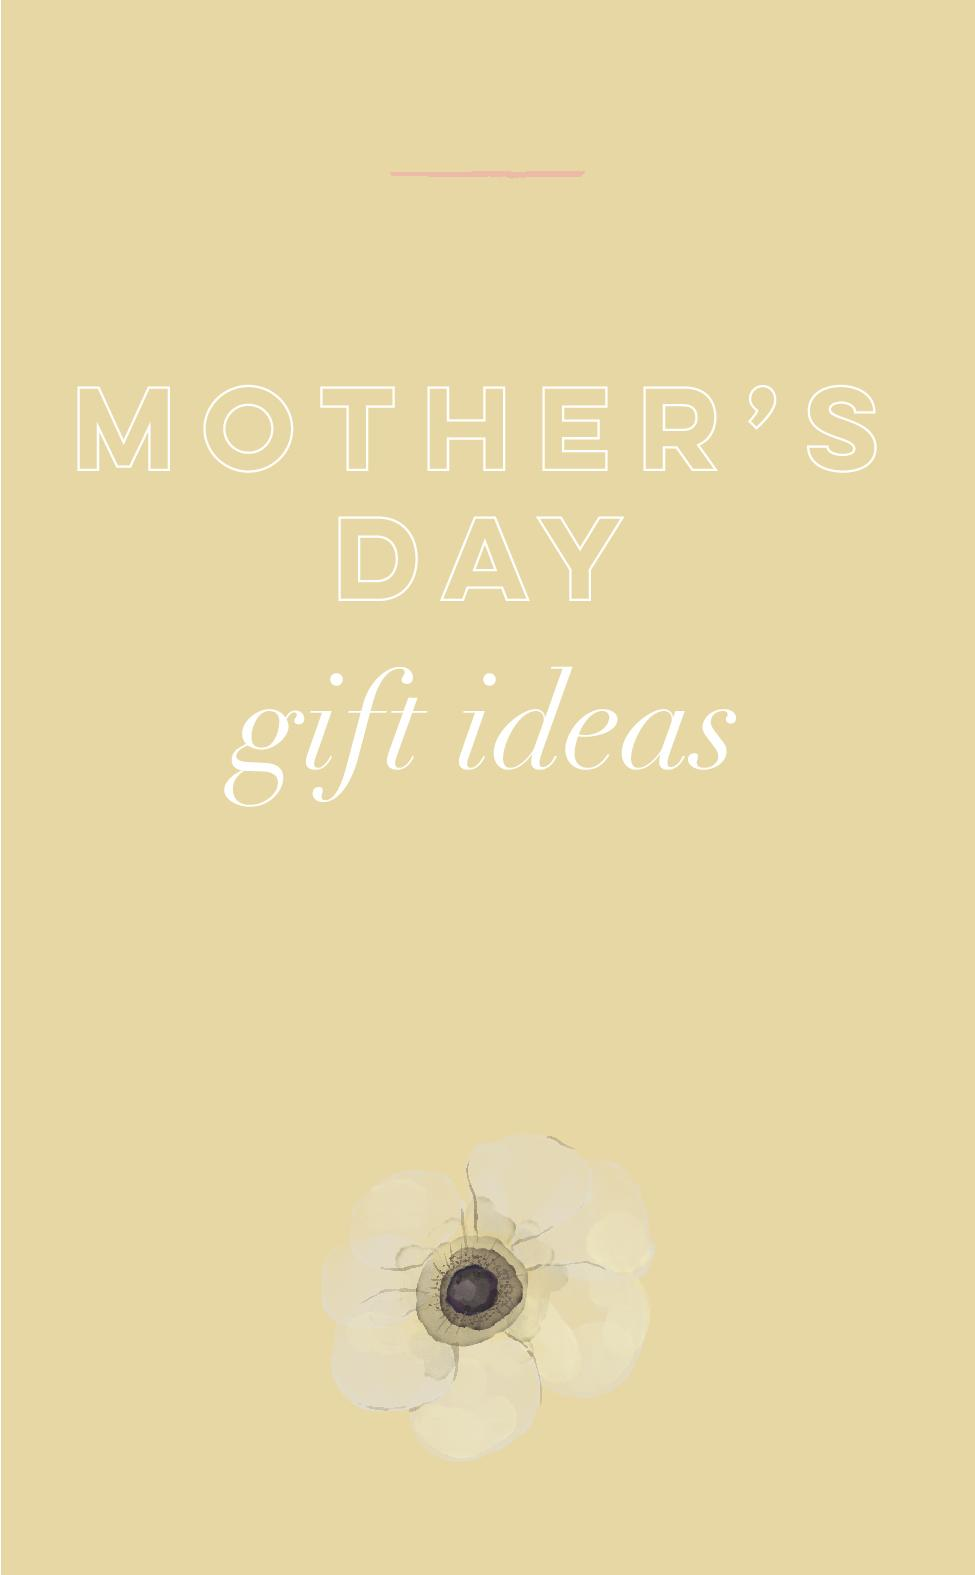 Mother s Day Gift Ideas.jpg